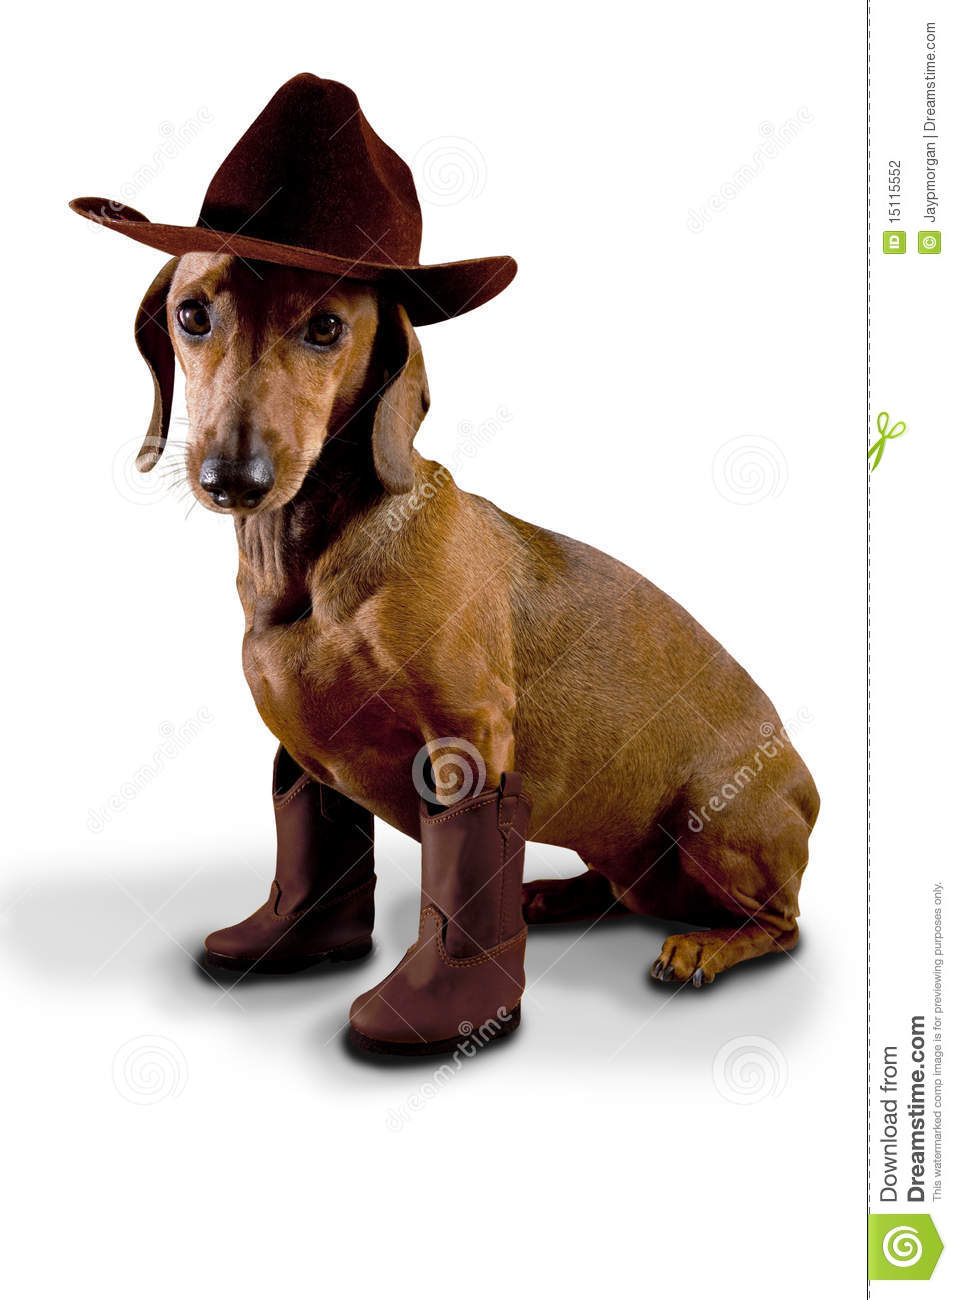 Doxie Dog Wearing Cowboy Hat And Boots Stock Photography